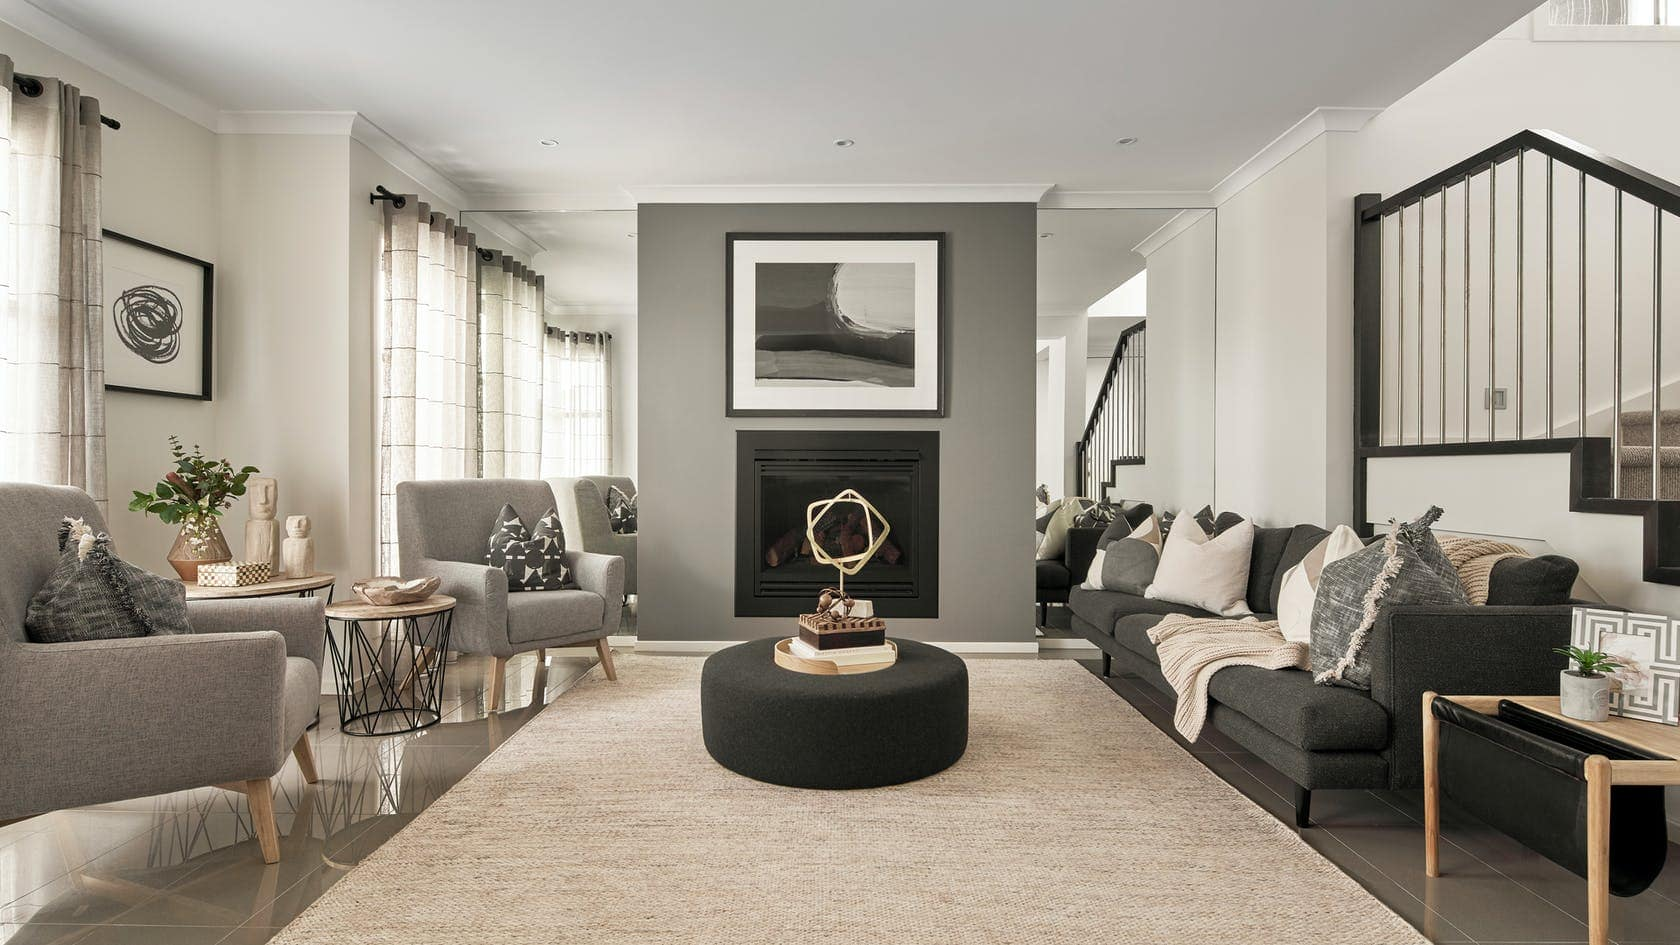 formal living room styling with black and grey furniture and fireplace with art above furniture